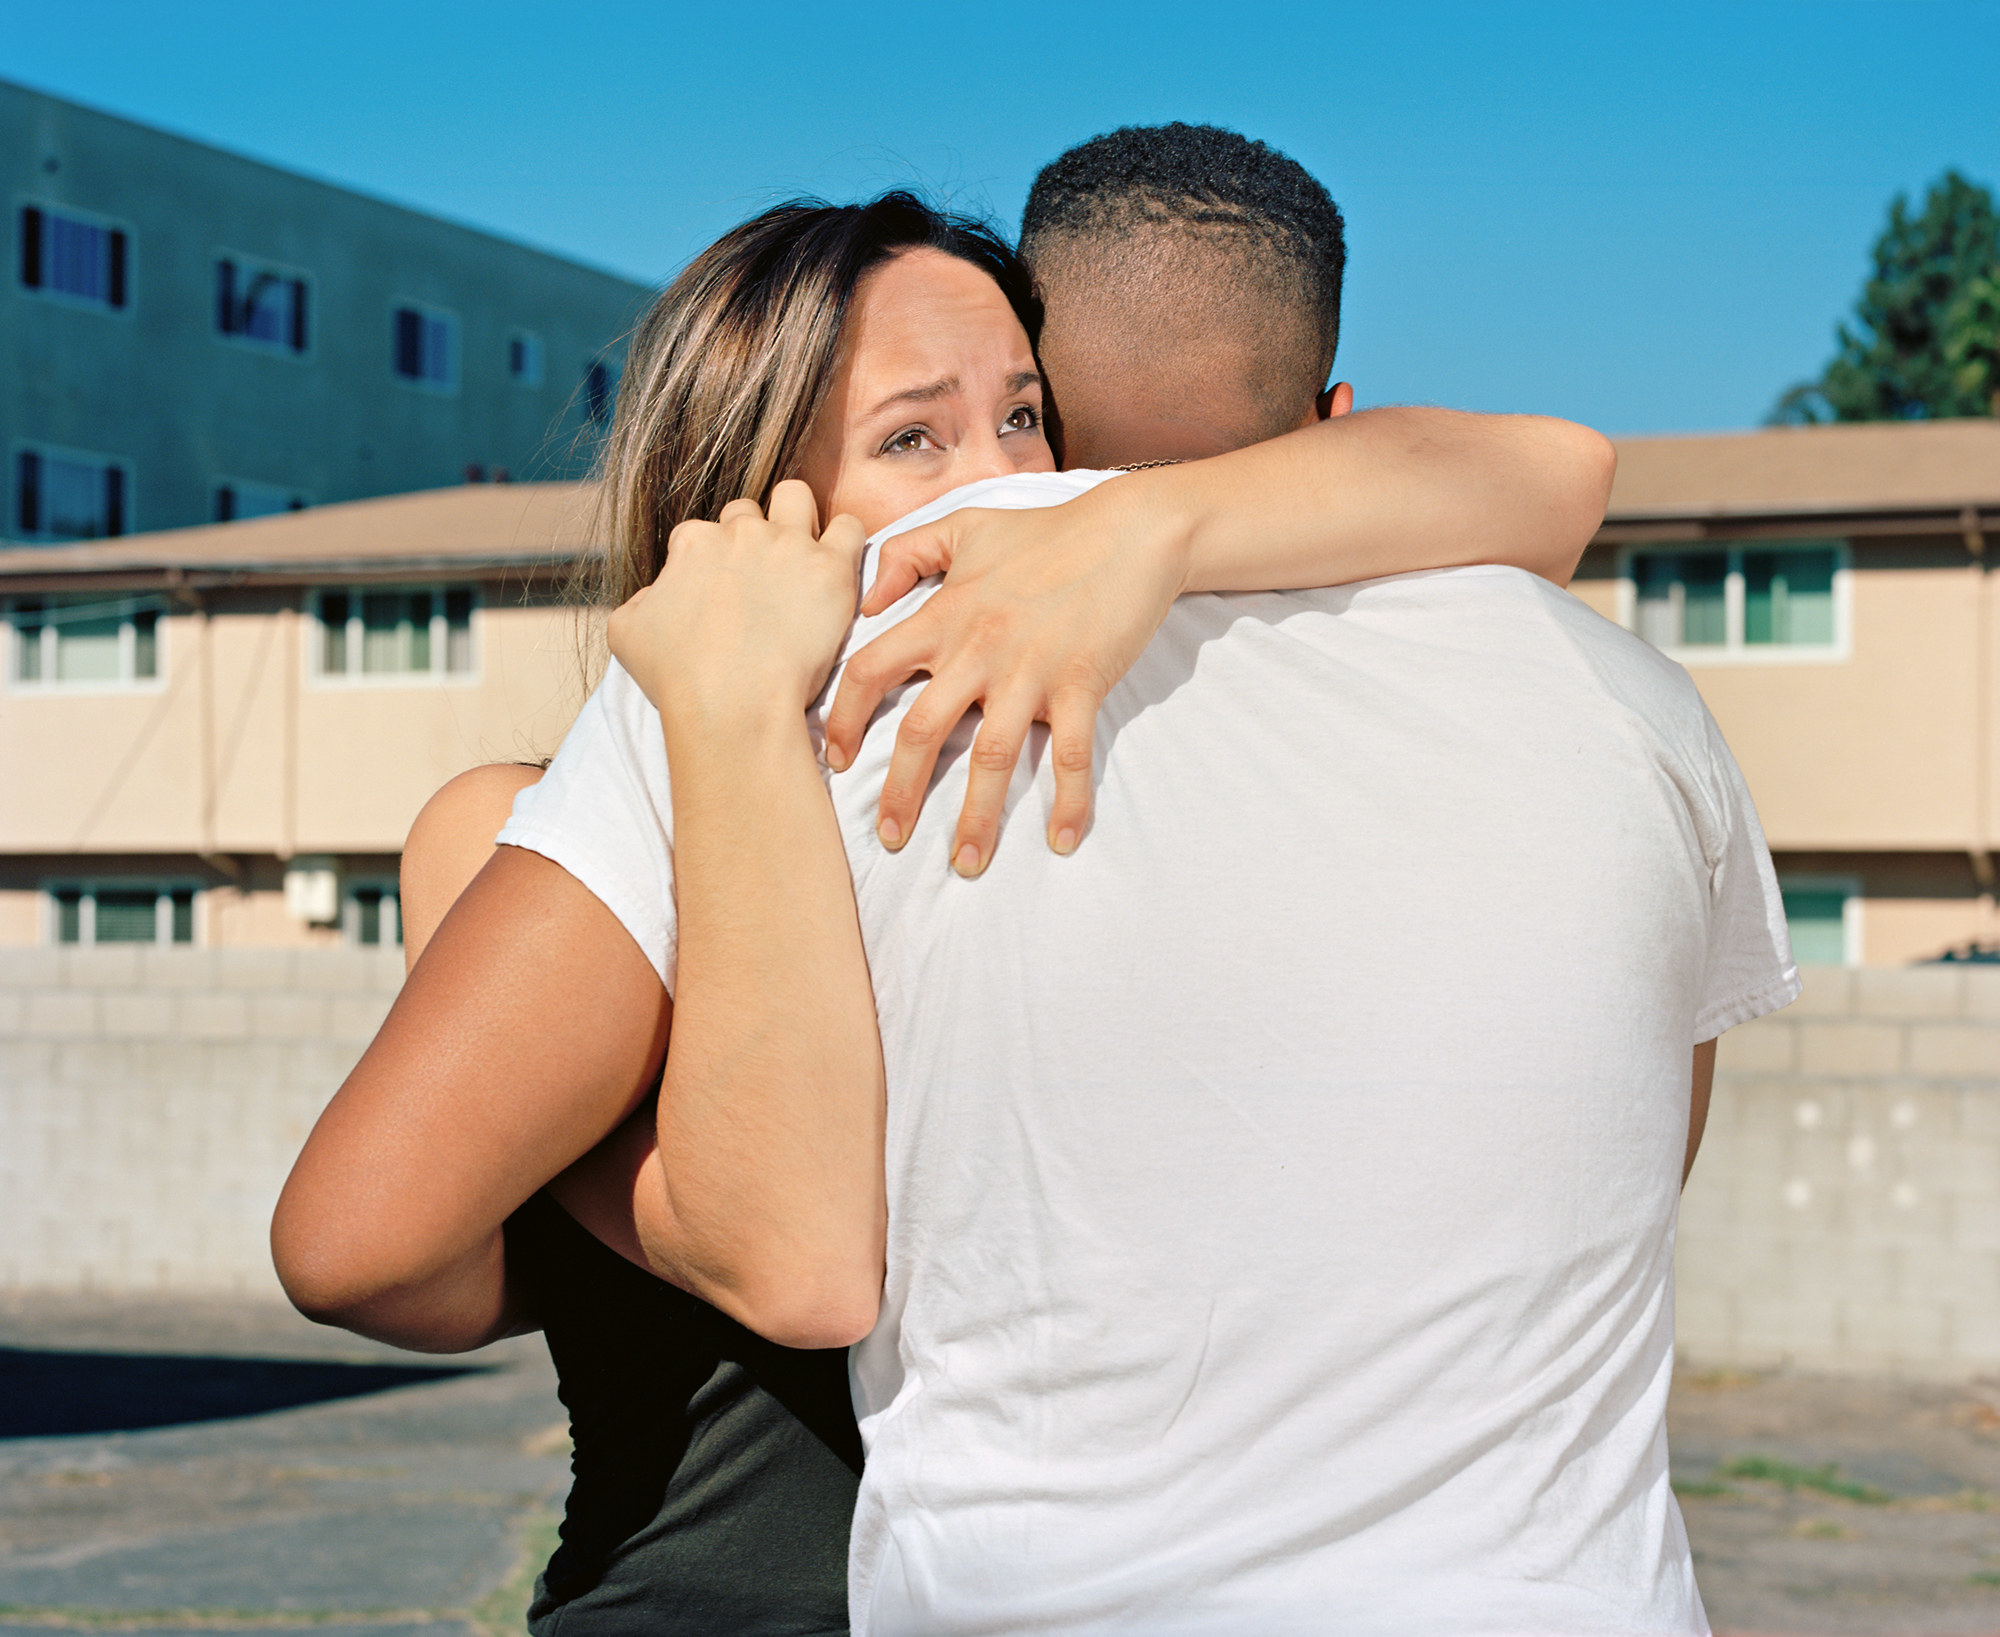 A woman looks over a man's shoulder as she hugs him tightly in front of apartments